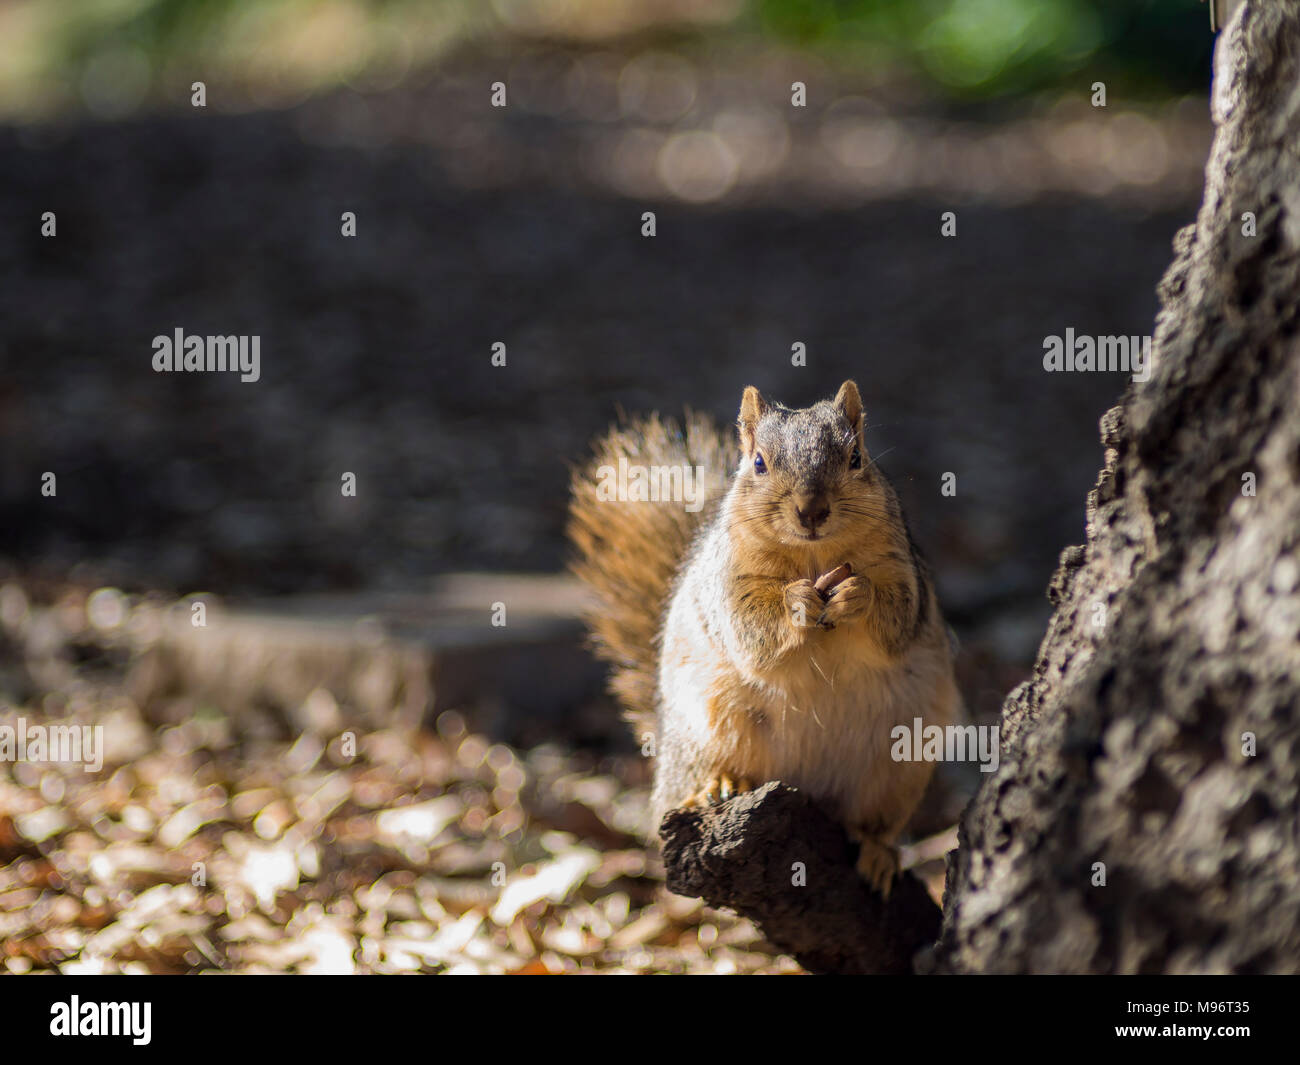 Close up shot of a cute little squirrel, photo took at Los Angeles - Stock Image